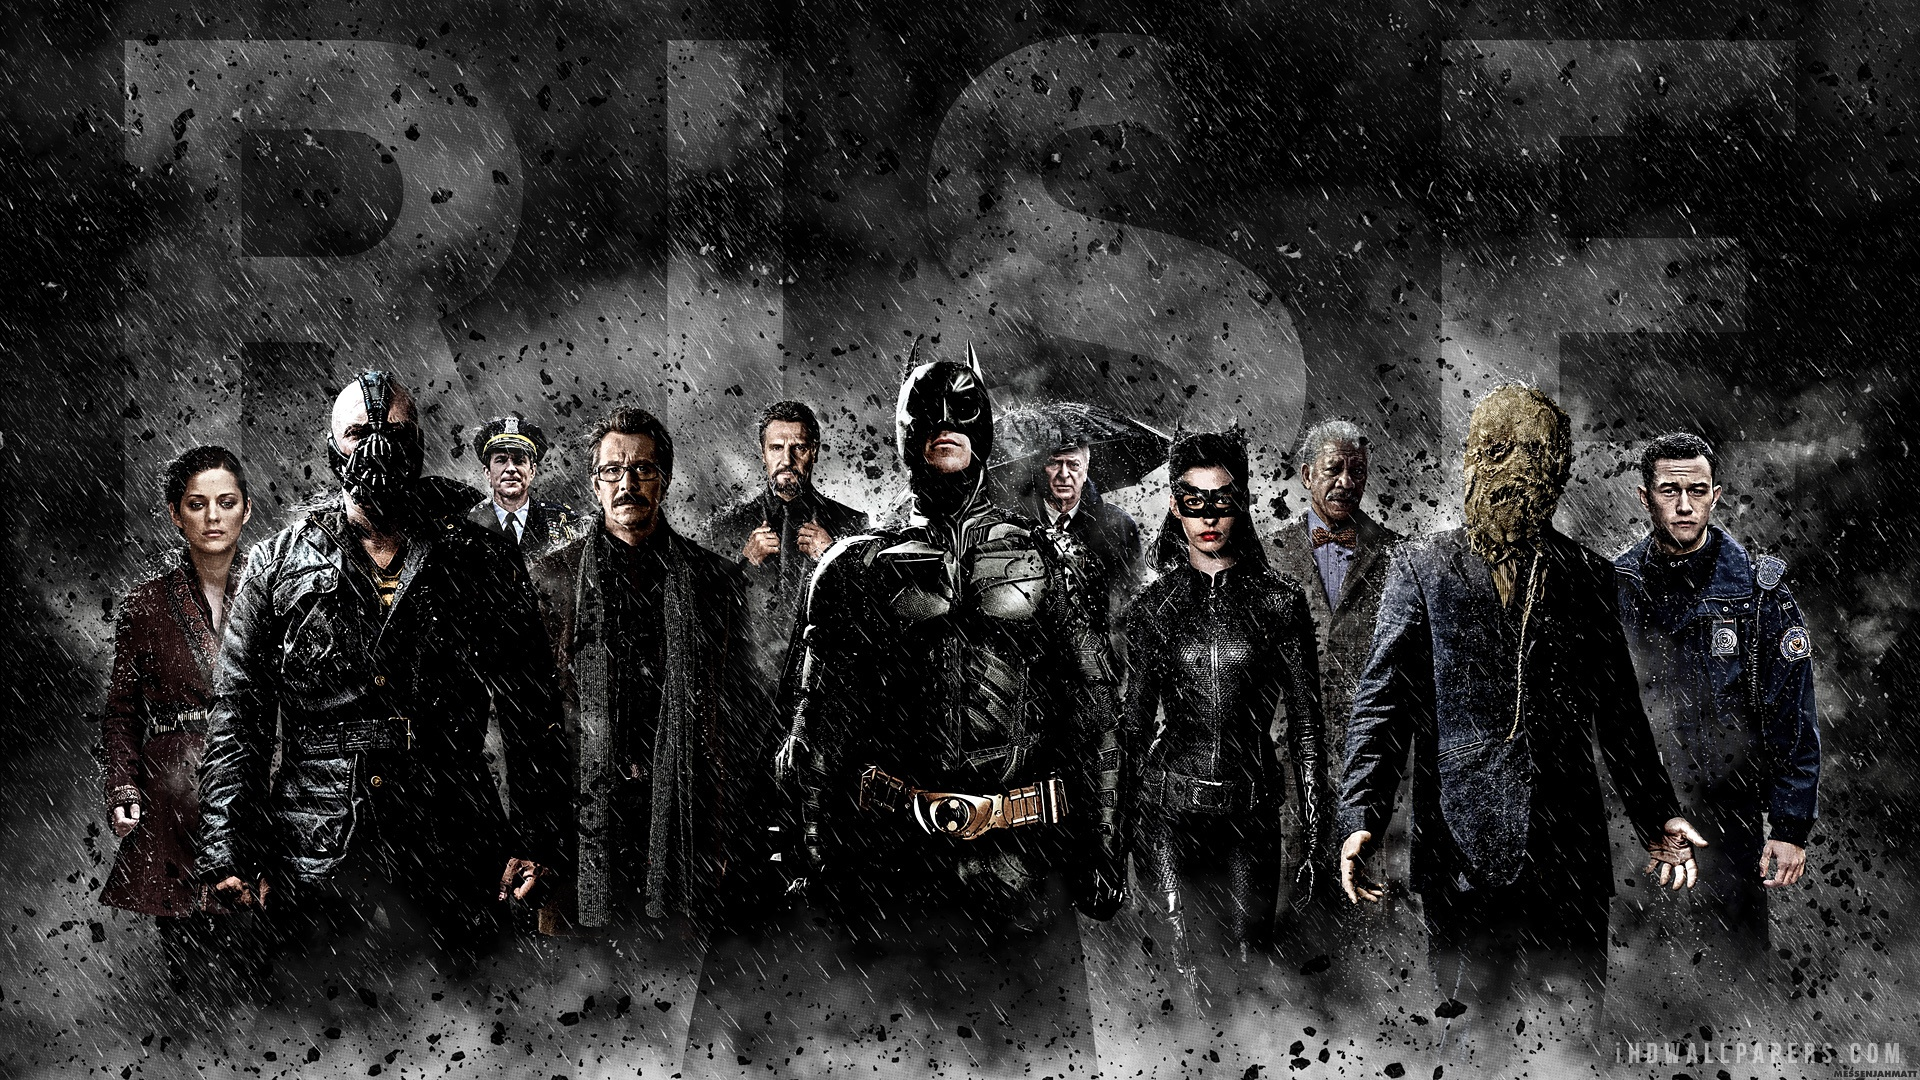 The Dark Knight Rises Cast HD Wallpaper   iHD Wallpapers 1920x1080